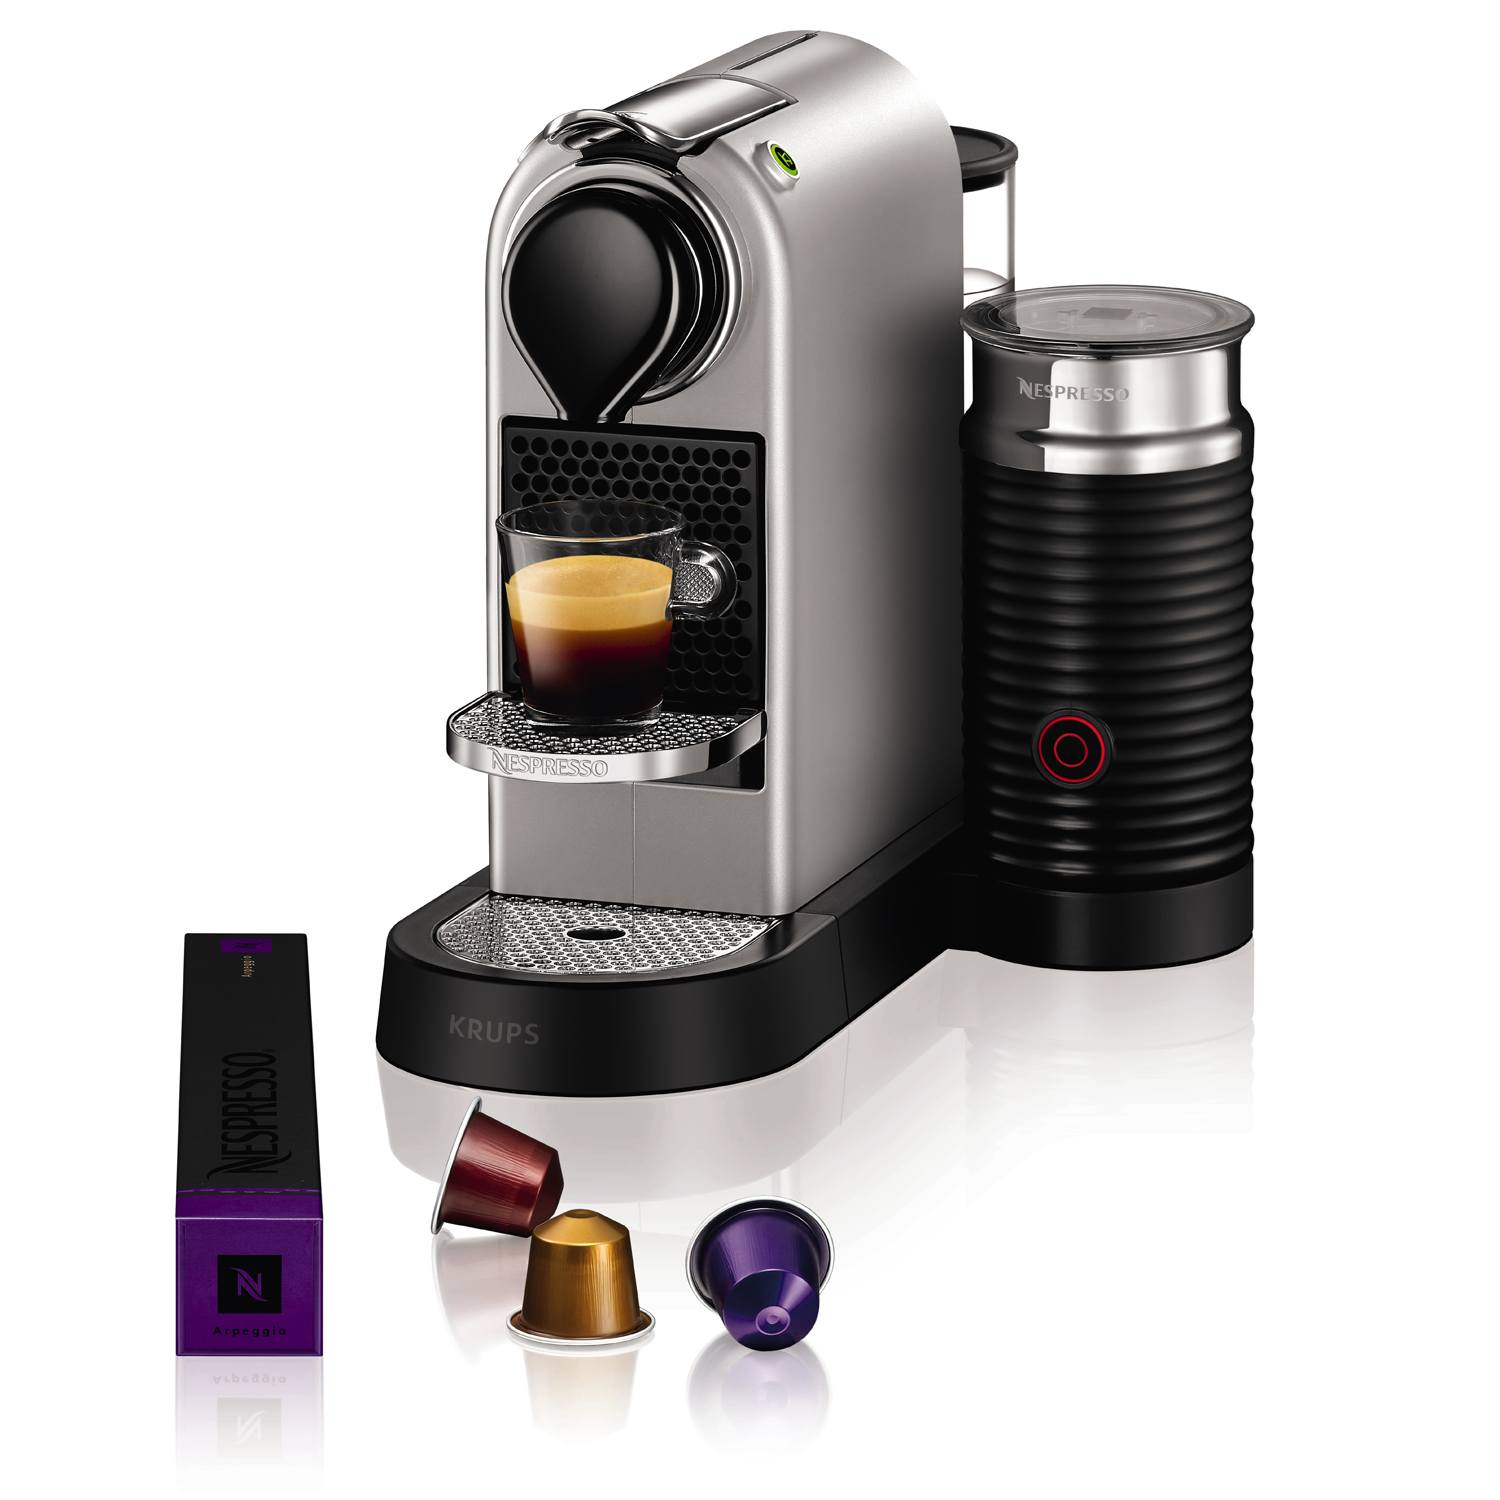 krups xn760b40 nespresso citiz milk coffee machine 1710w in silver ebay. Black Bedroom Furniture Sets. Home Design Ideas